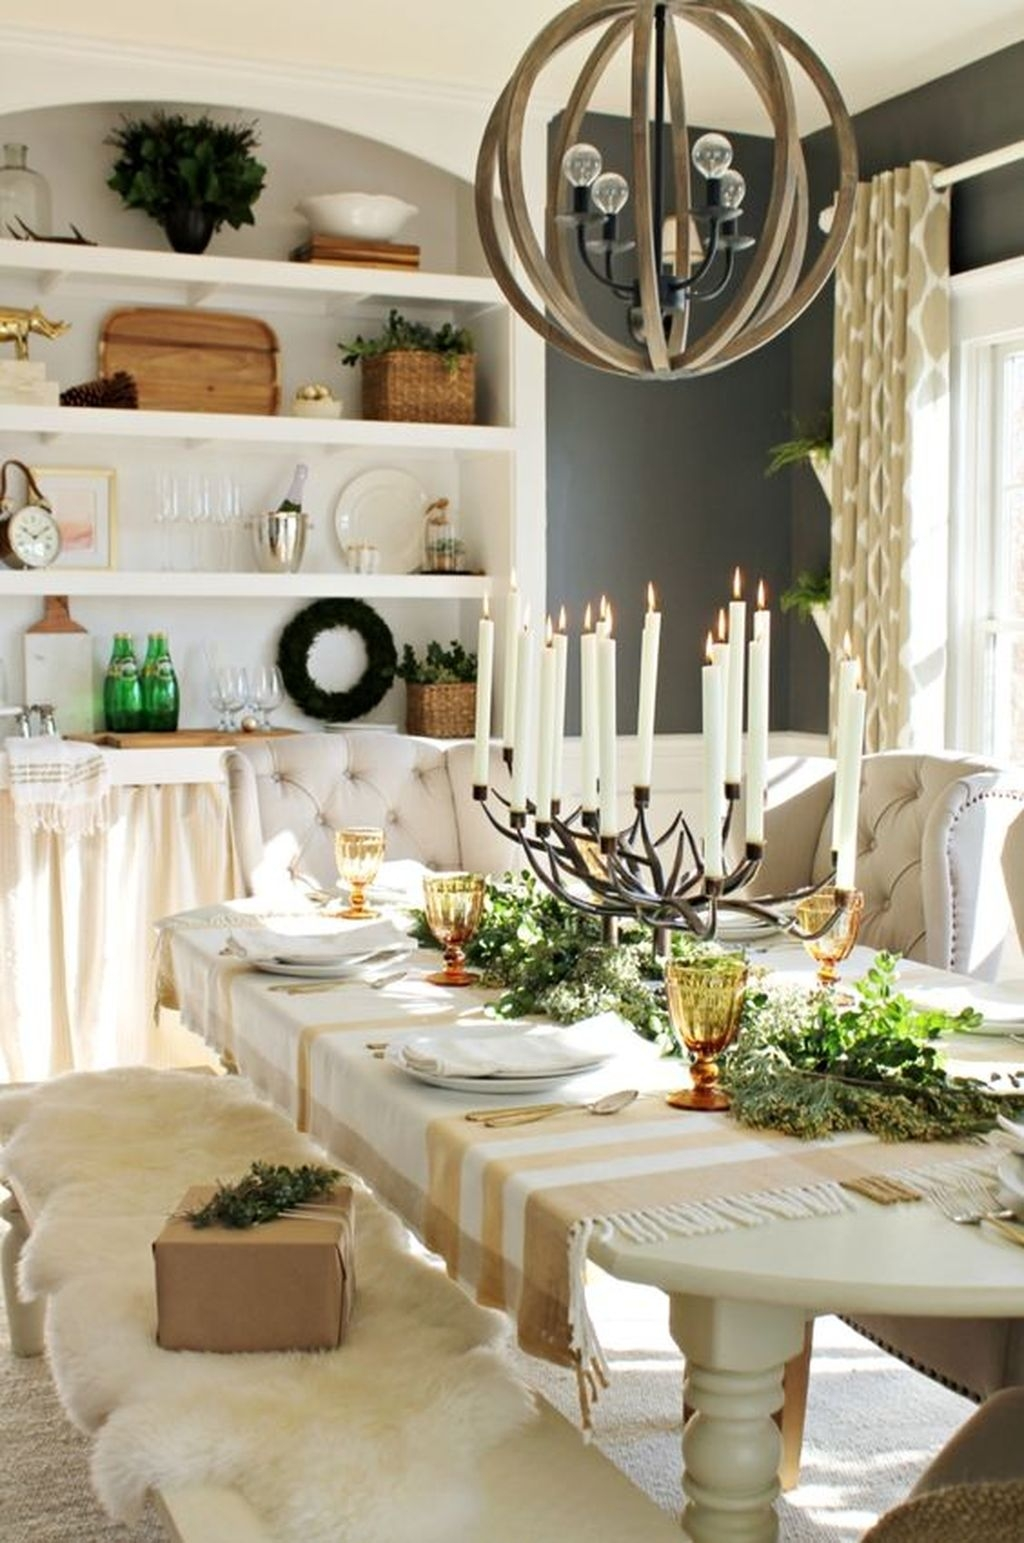 The Best Winter Dining Room Decorations 16